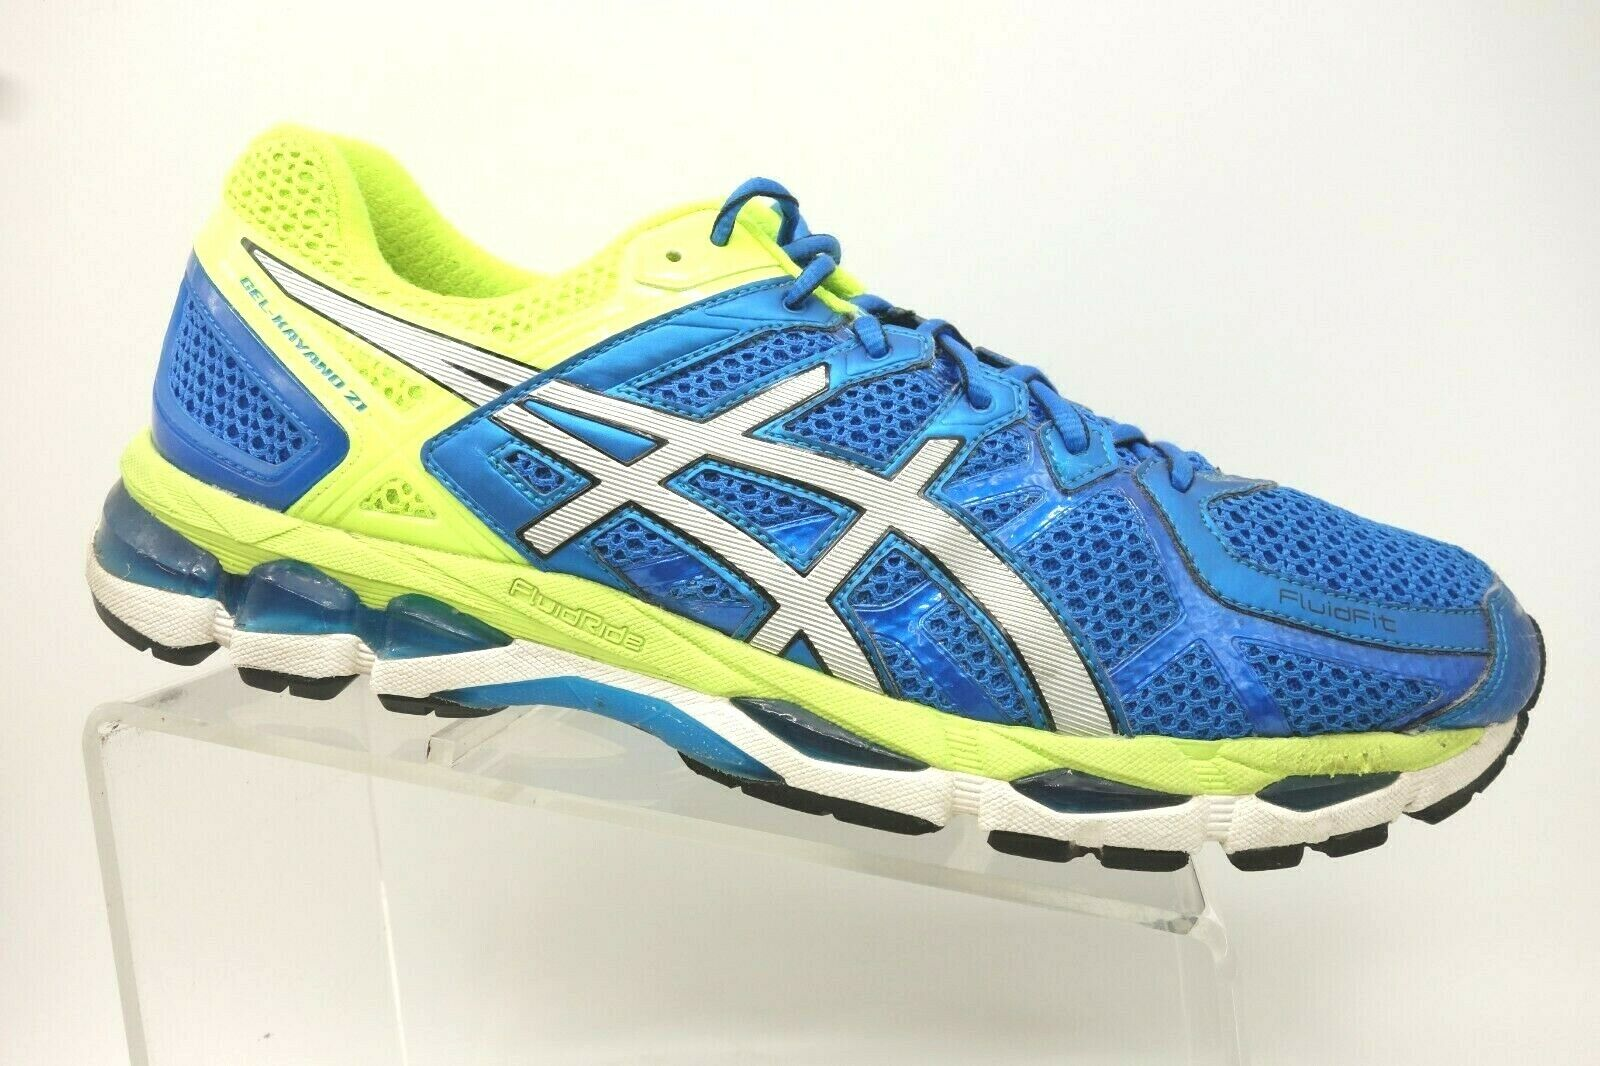 Asics Gel Kayano 21 Blue Mesh Lace Up Athletic Sport Running Shoes Men's 13